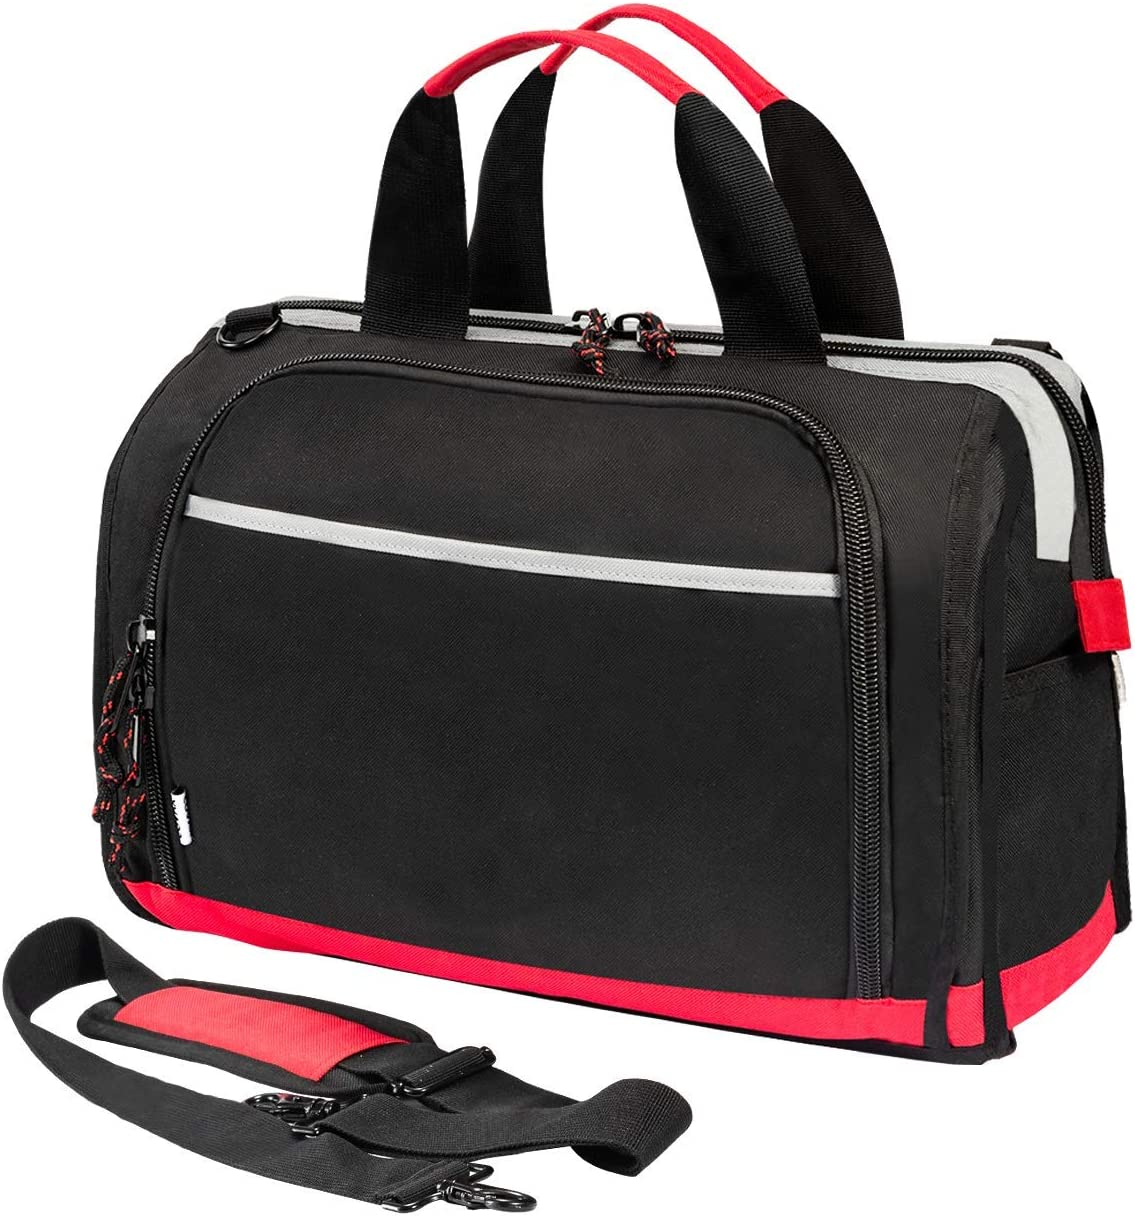 Tool Bag Wide Mouth Tote Bag with 25 Pockets 16-inch Storage Bag with Adjustable Shoulder Strap Black Red